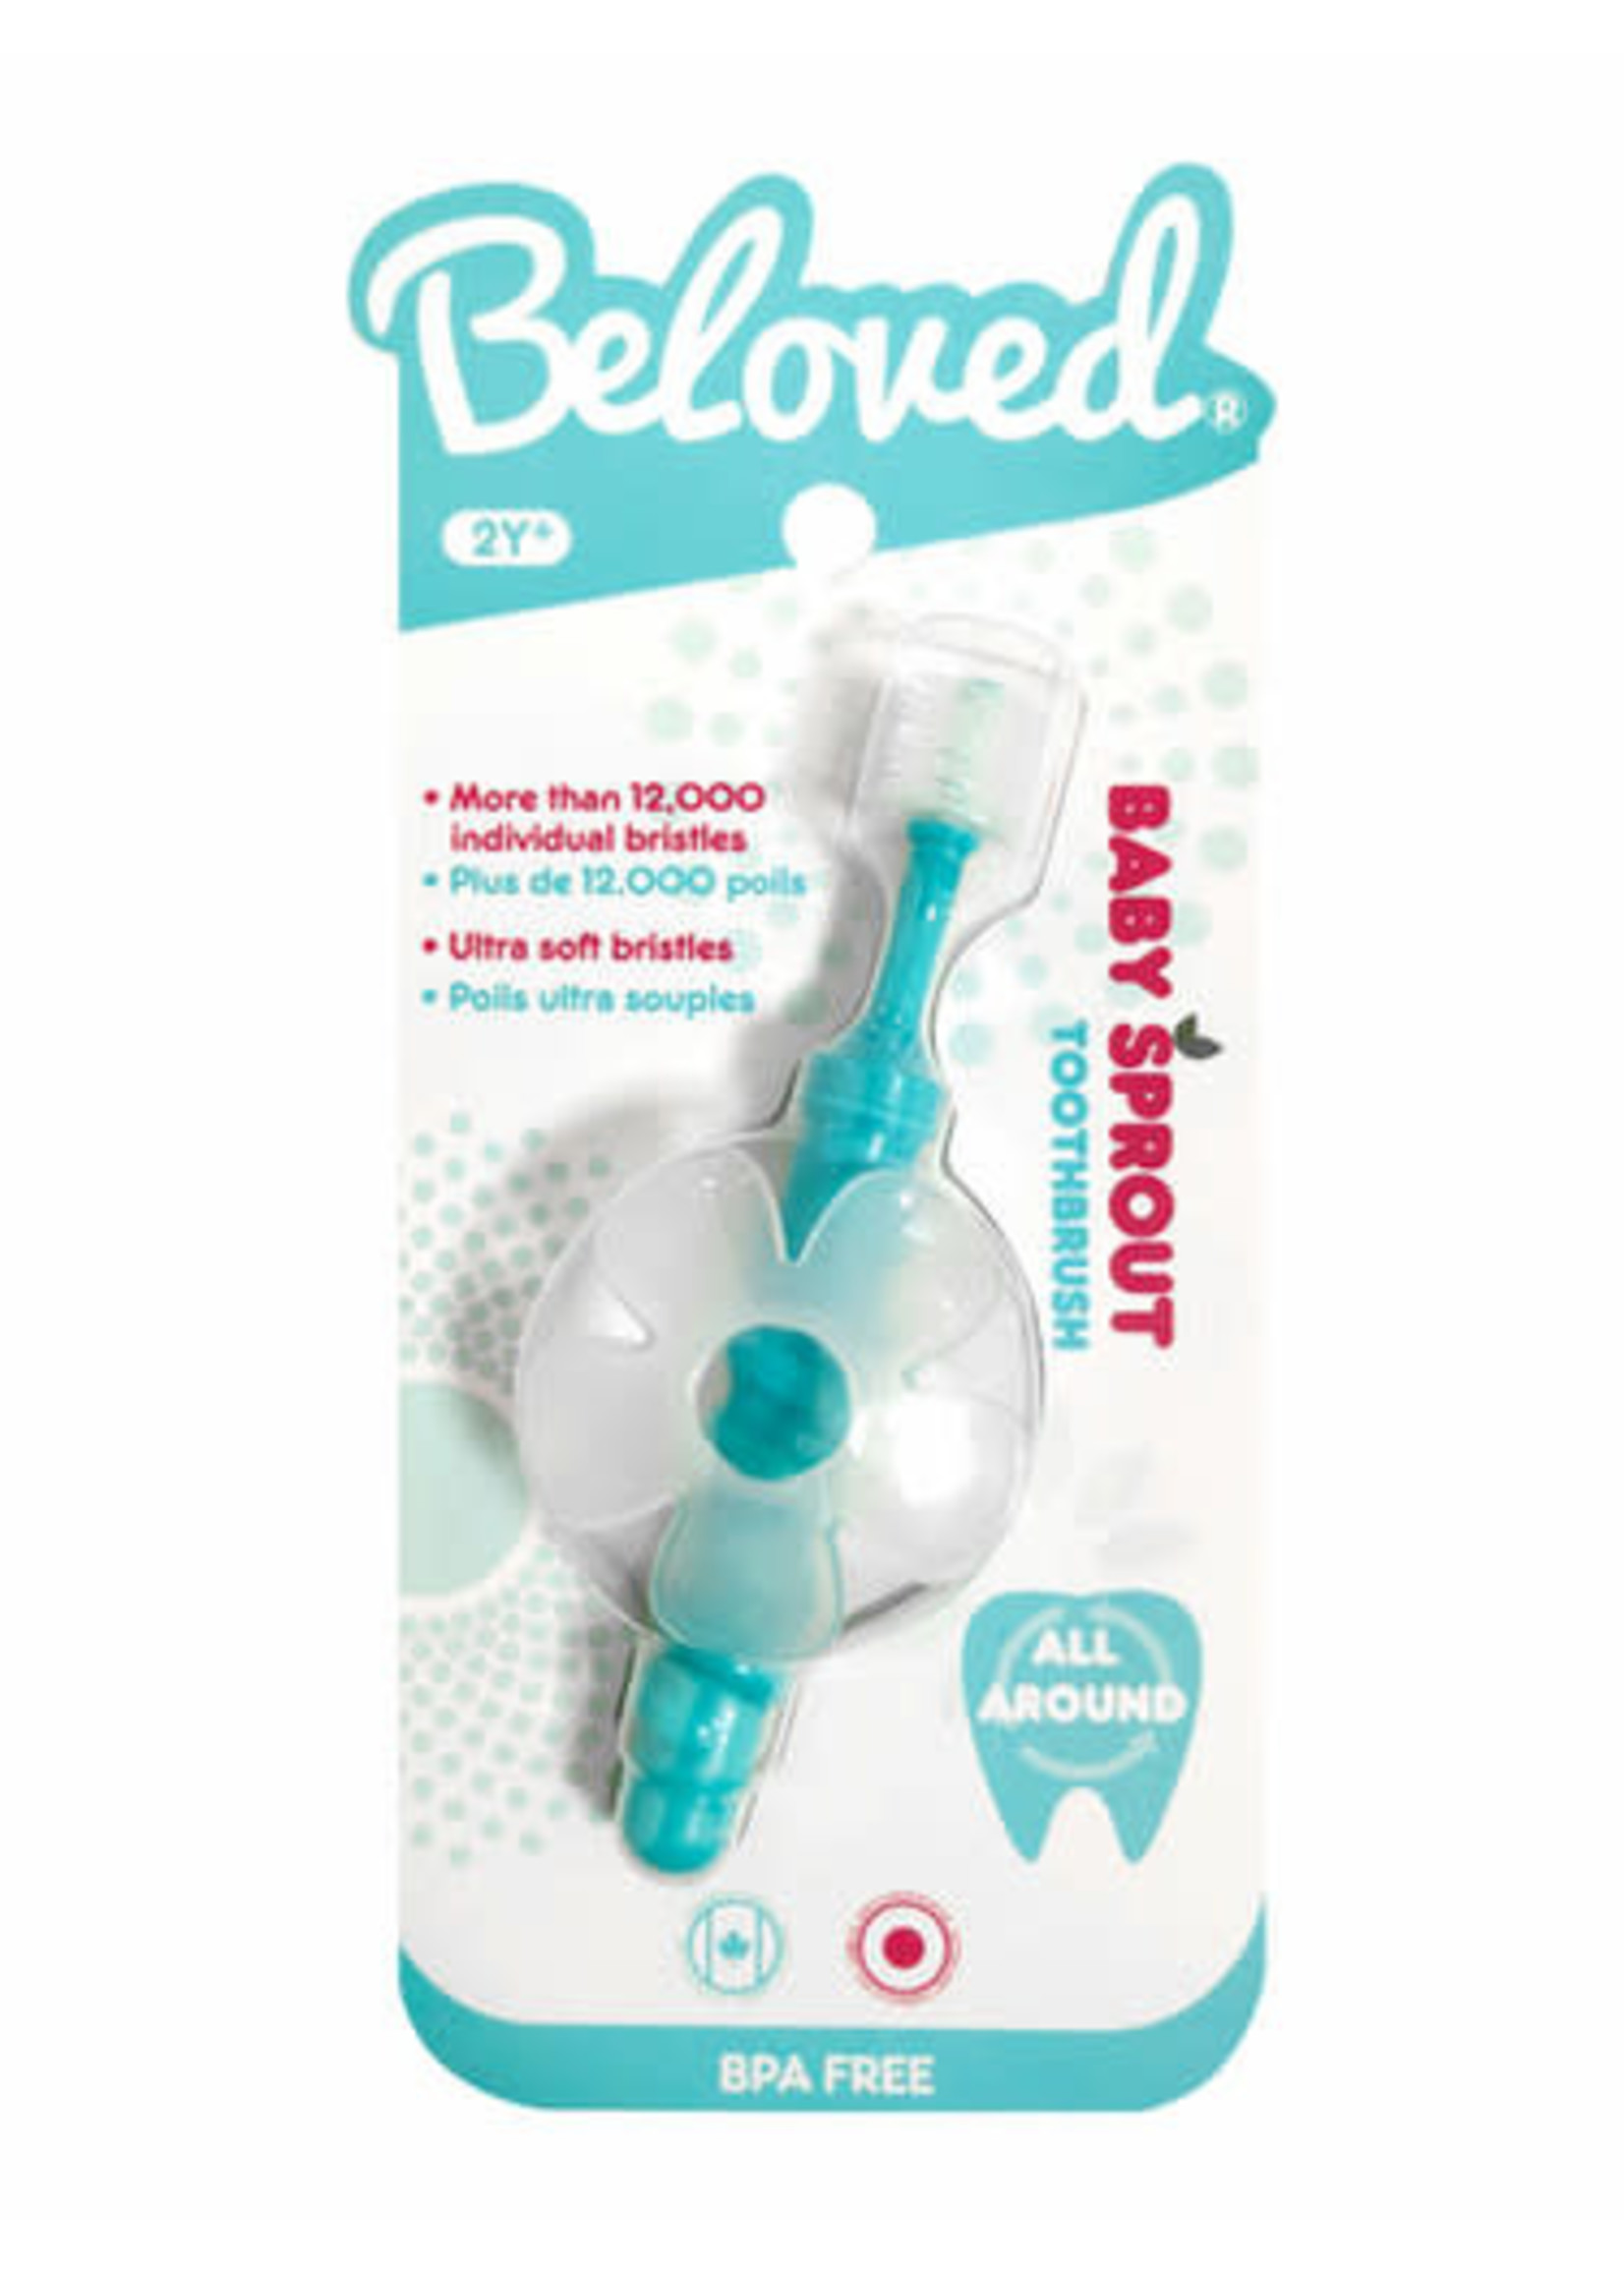 beloved 360 cylinder Sprout toothbrush 2y+